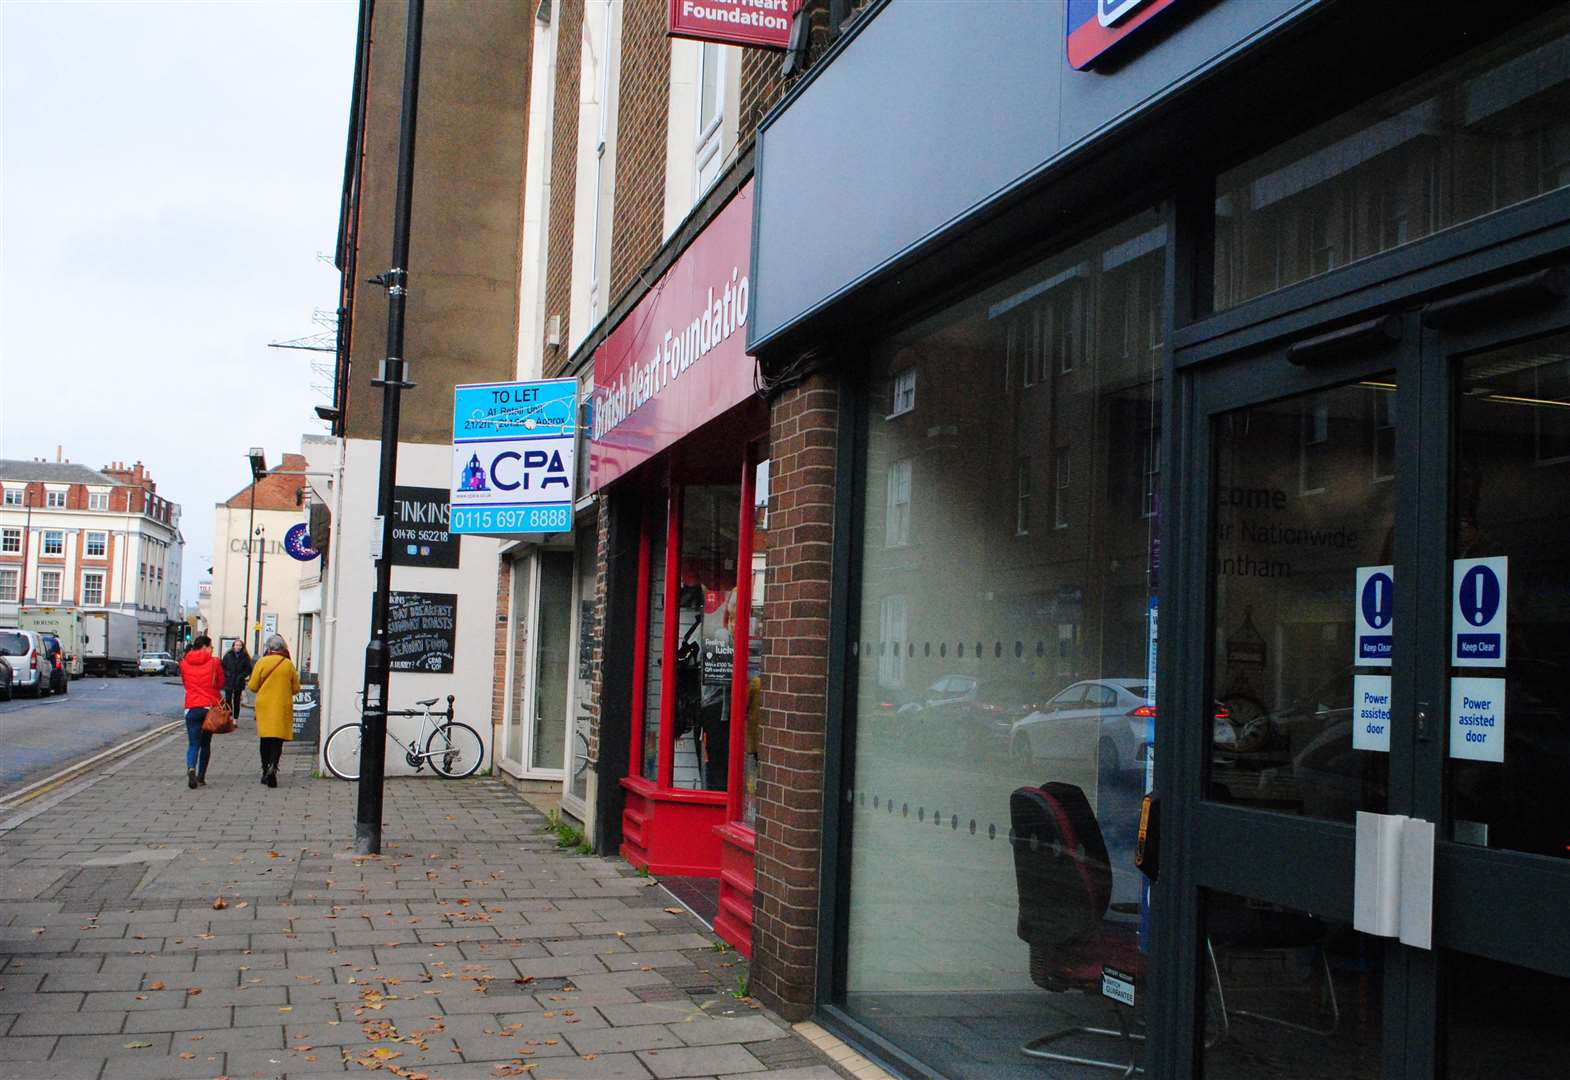 Report says 48 shop units are vacant in Grantham